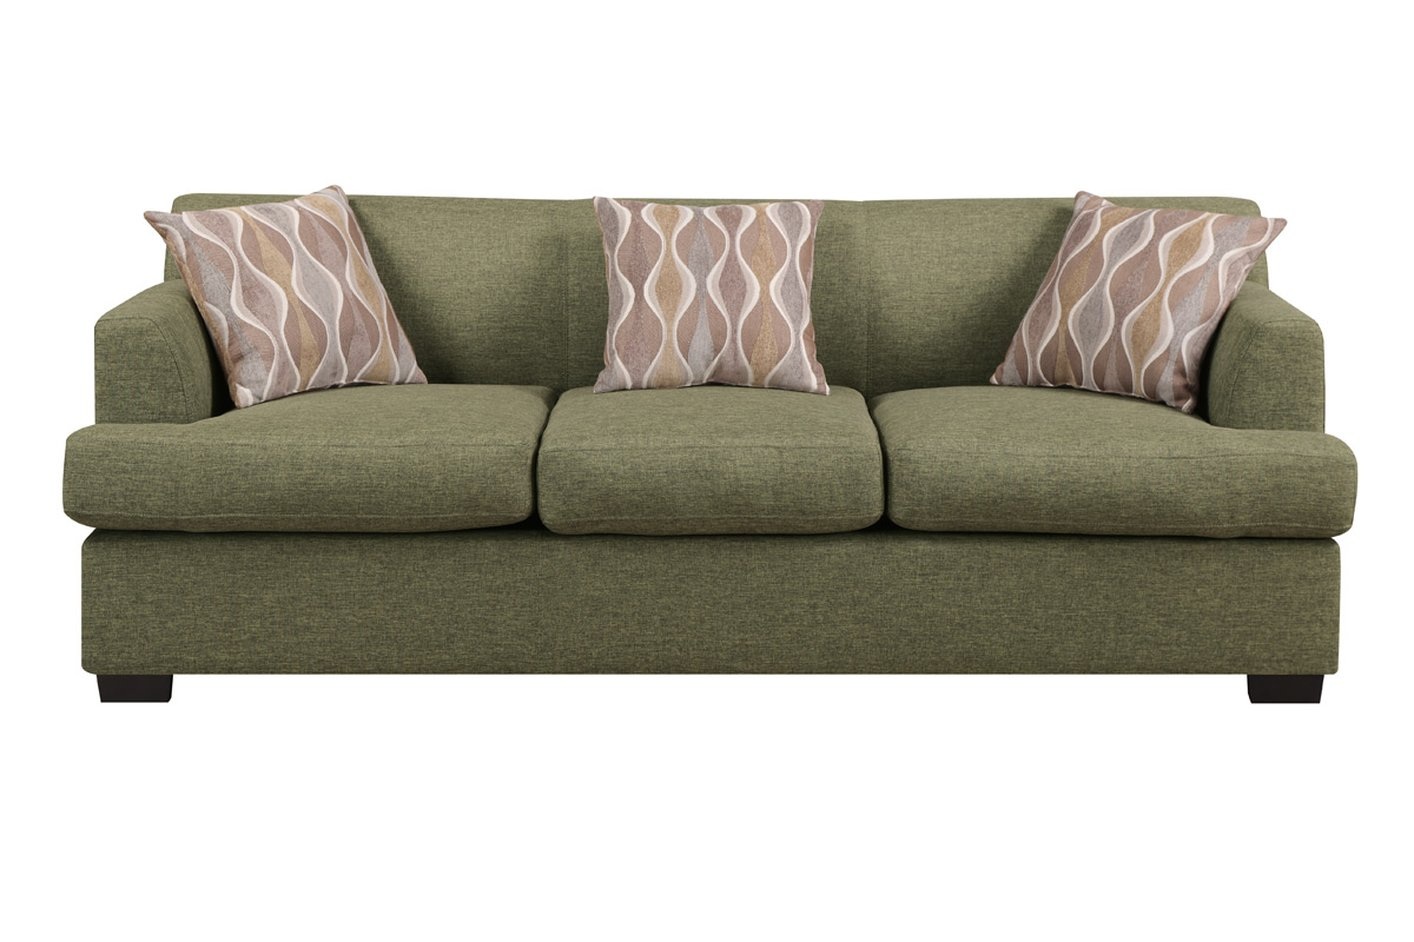 Poundex Montreal Iv F7978 Green Fabric Sofa Steal A Sofa Furniture Outlet Los Angeles Ca